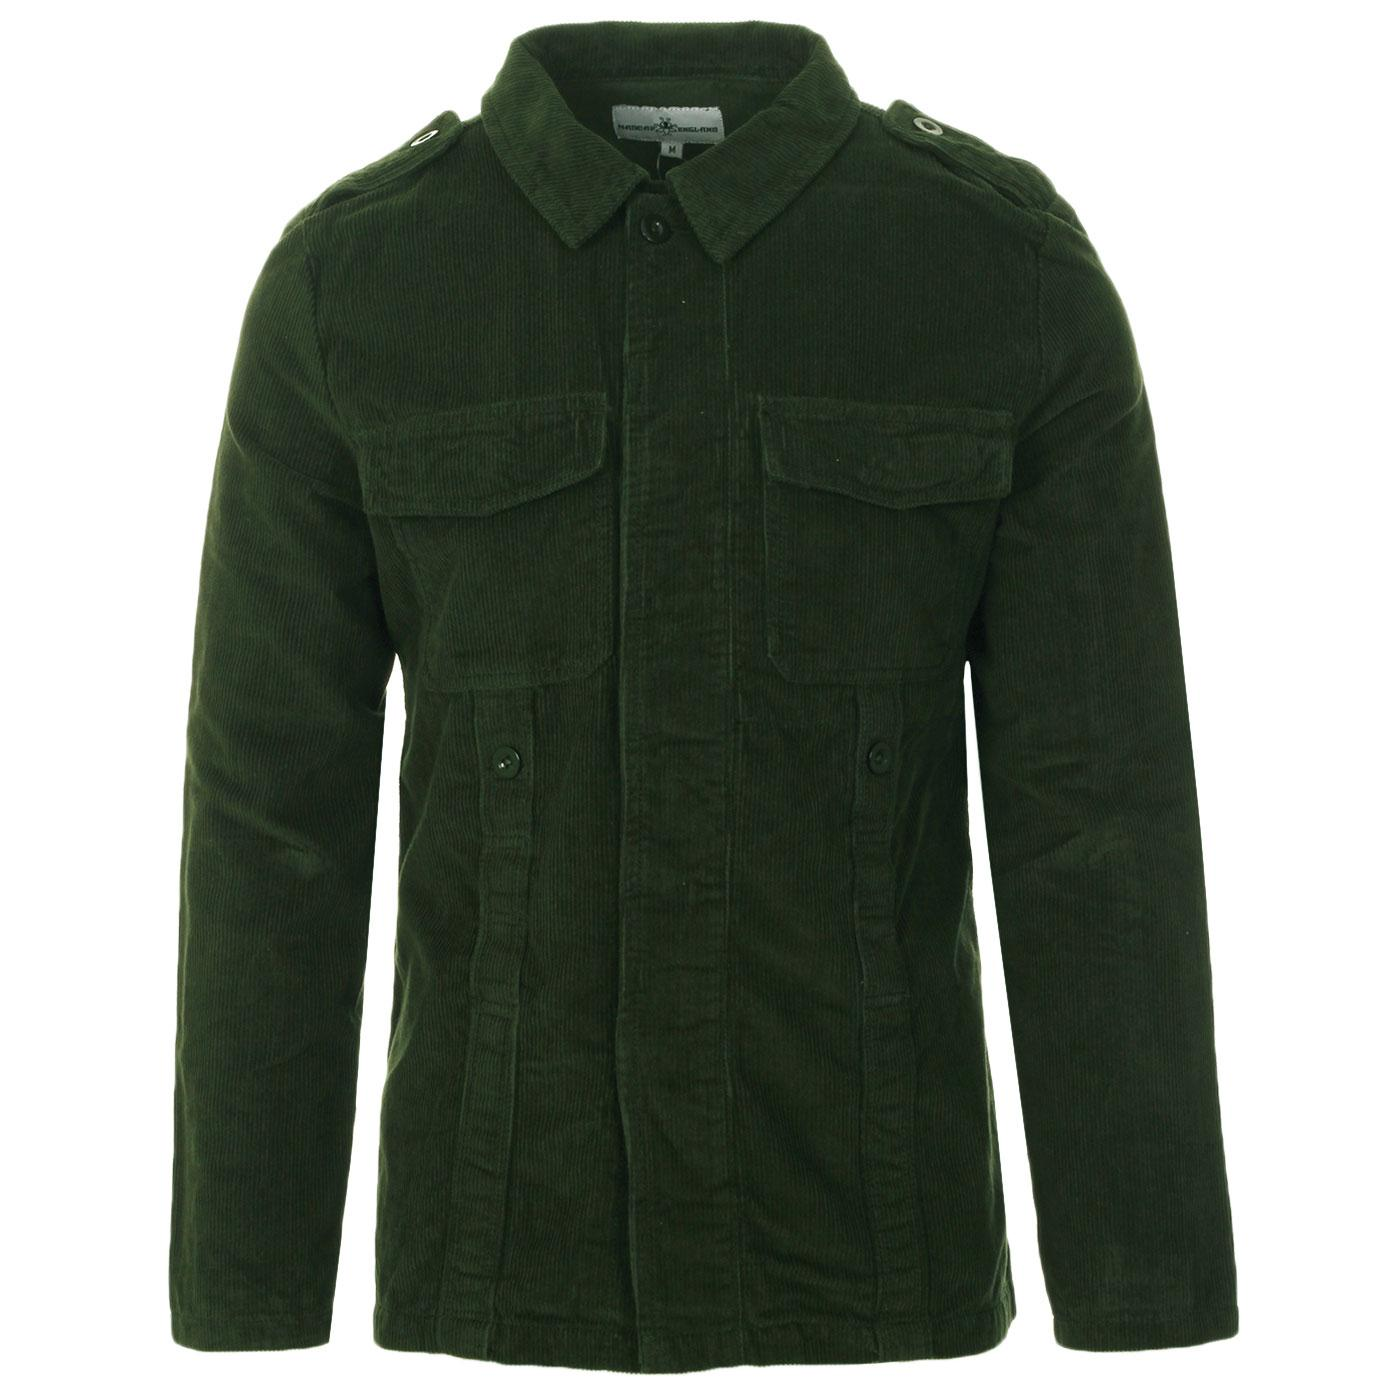 Madcap England Lennon Men's 60s Mod Cord Overshirt Jacket in Deep Forest